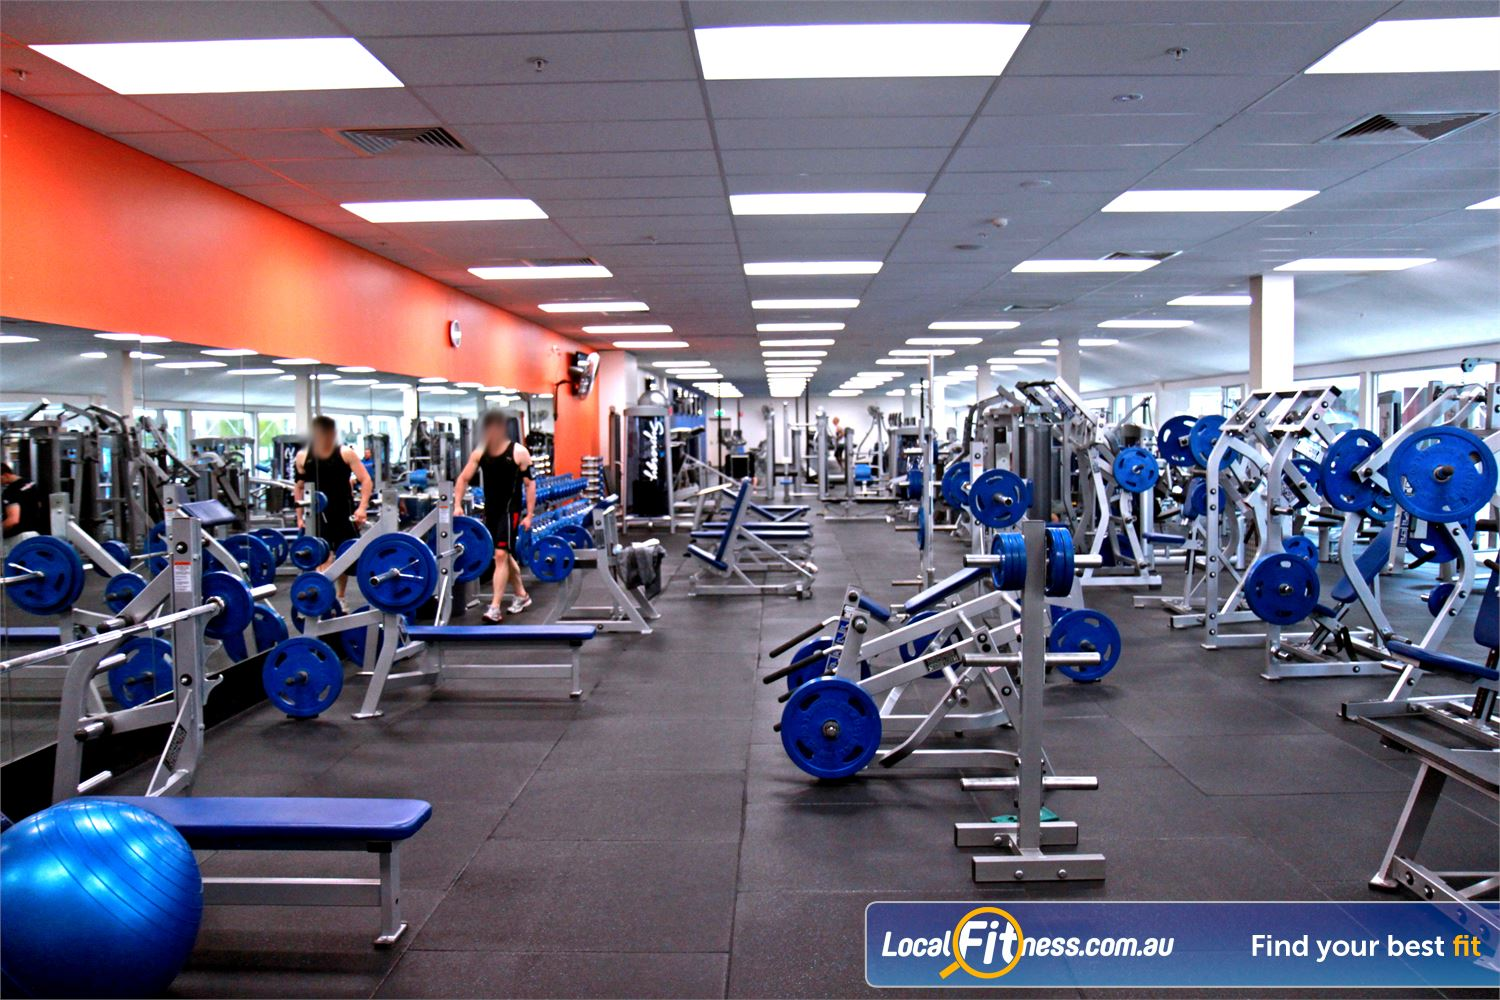 Goodlife Health Clubs North Adelaide Goodlife North Adelaide gym offers a convenient location with a fabulous cosmopolitan atmosphere.